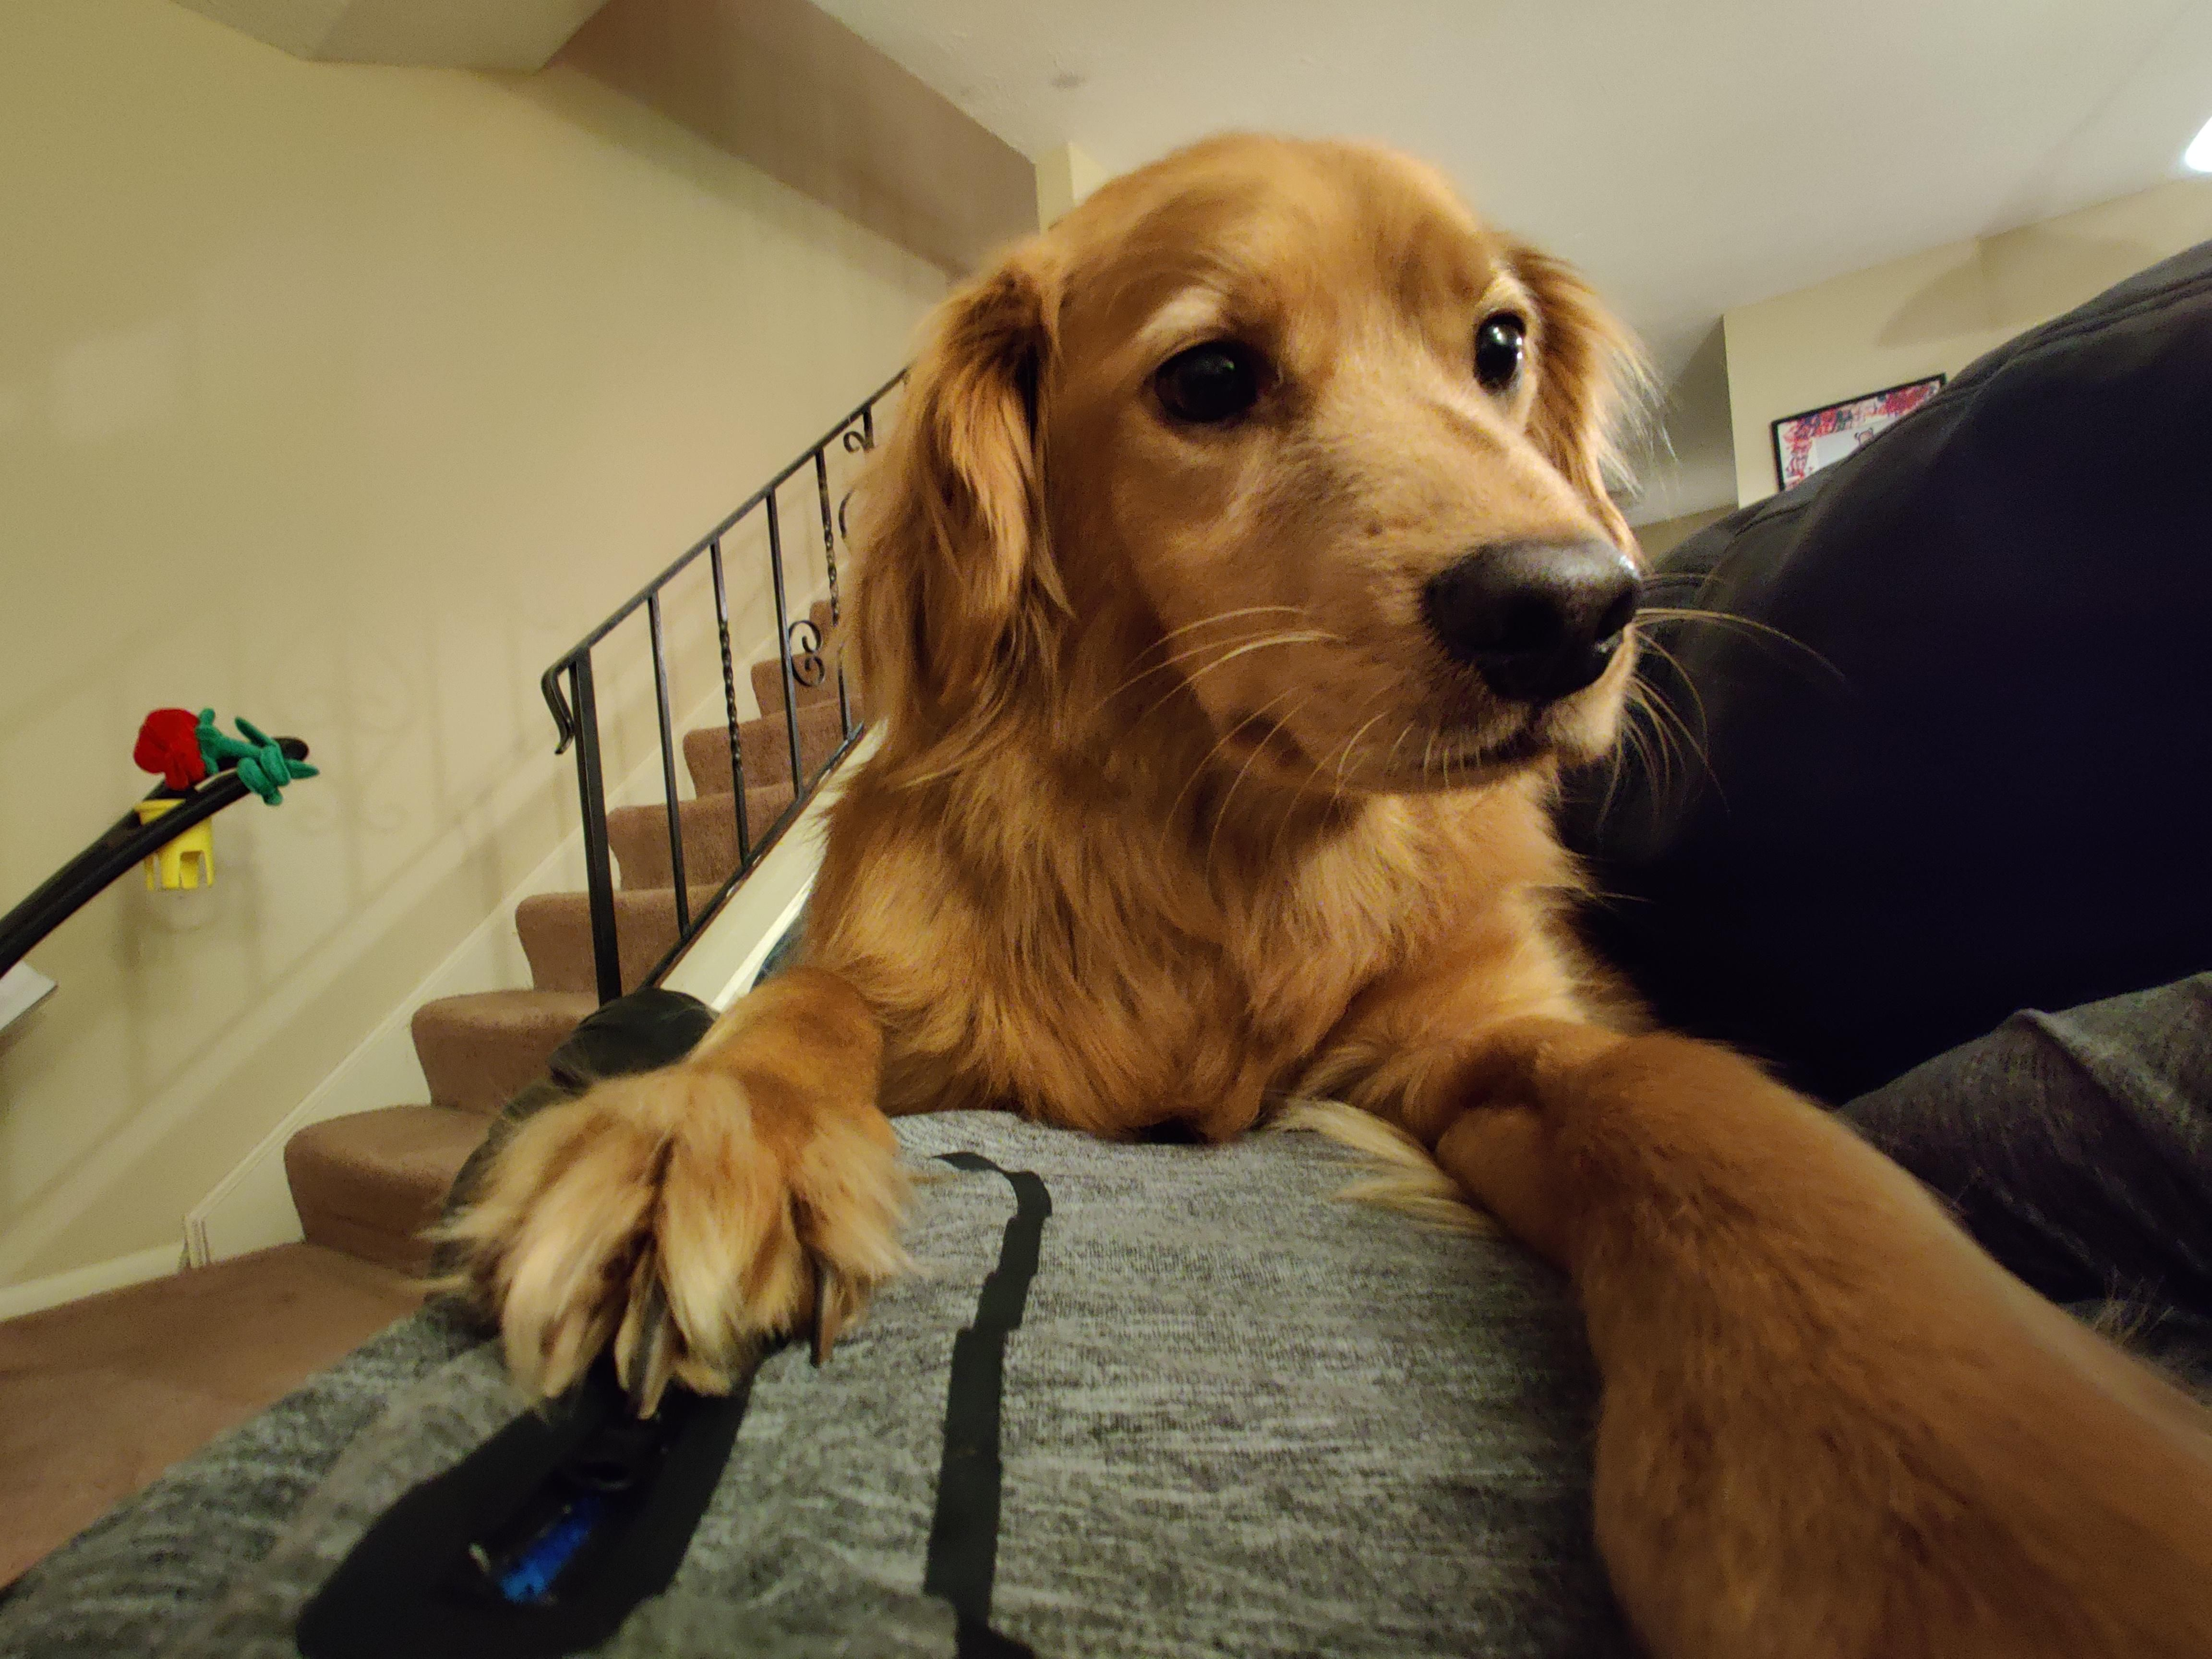 Giant Dog In 2020 Cute Cats And Dogs Golden Retriever Giant Dogs